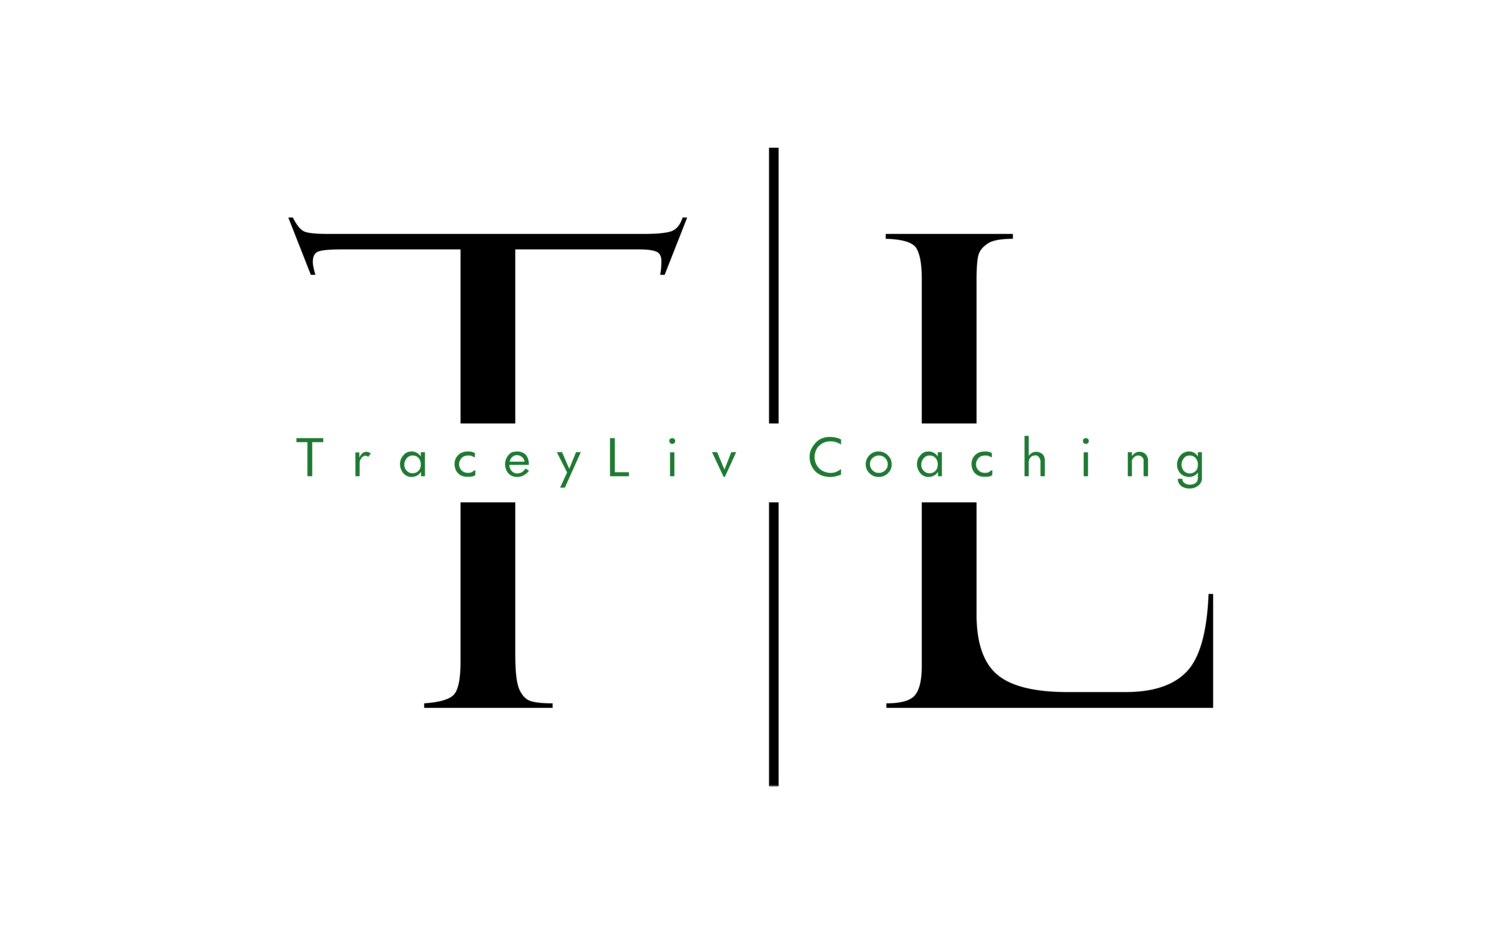 TraceyLiv | Coaching entrepreneurs to drive social change